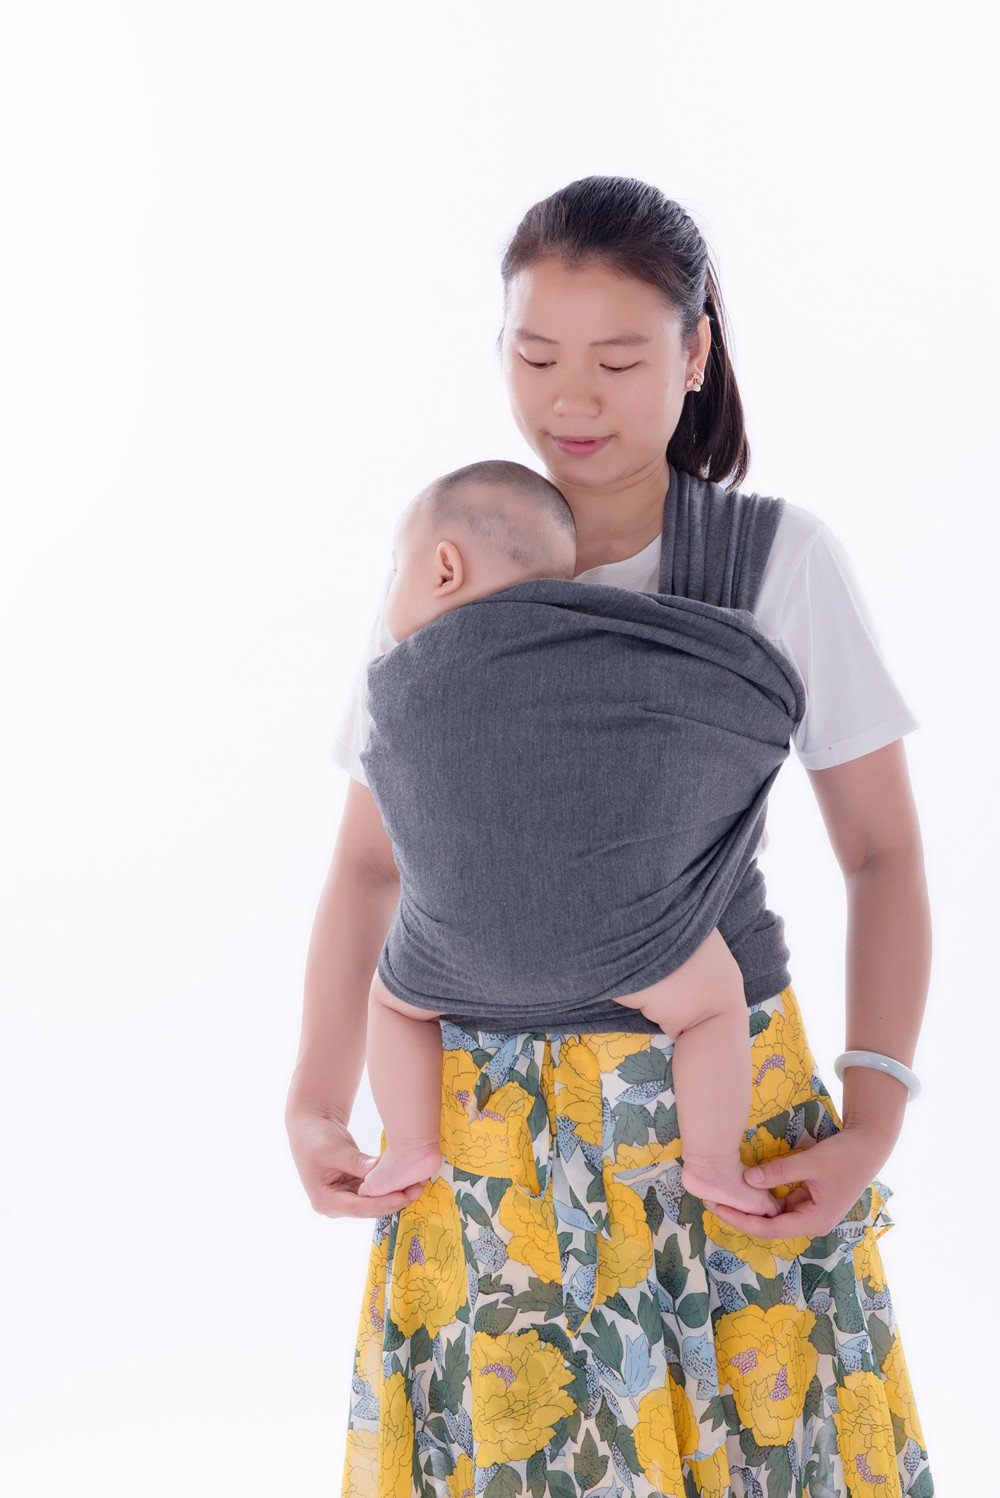 Emwel Baby Wrap Carrier Adjustable Breastfeeding Cover Cotton Sling Baby Carrier for Infants up to 35 lbs/16kg, Soft and Comfortable